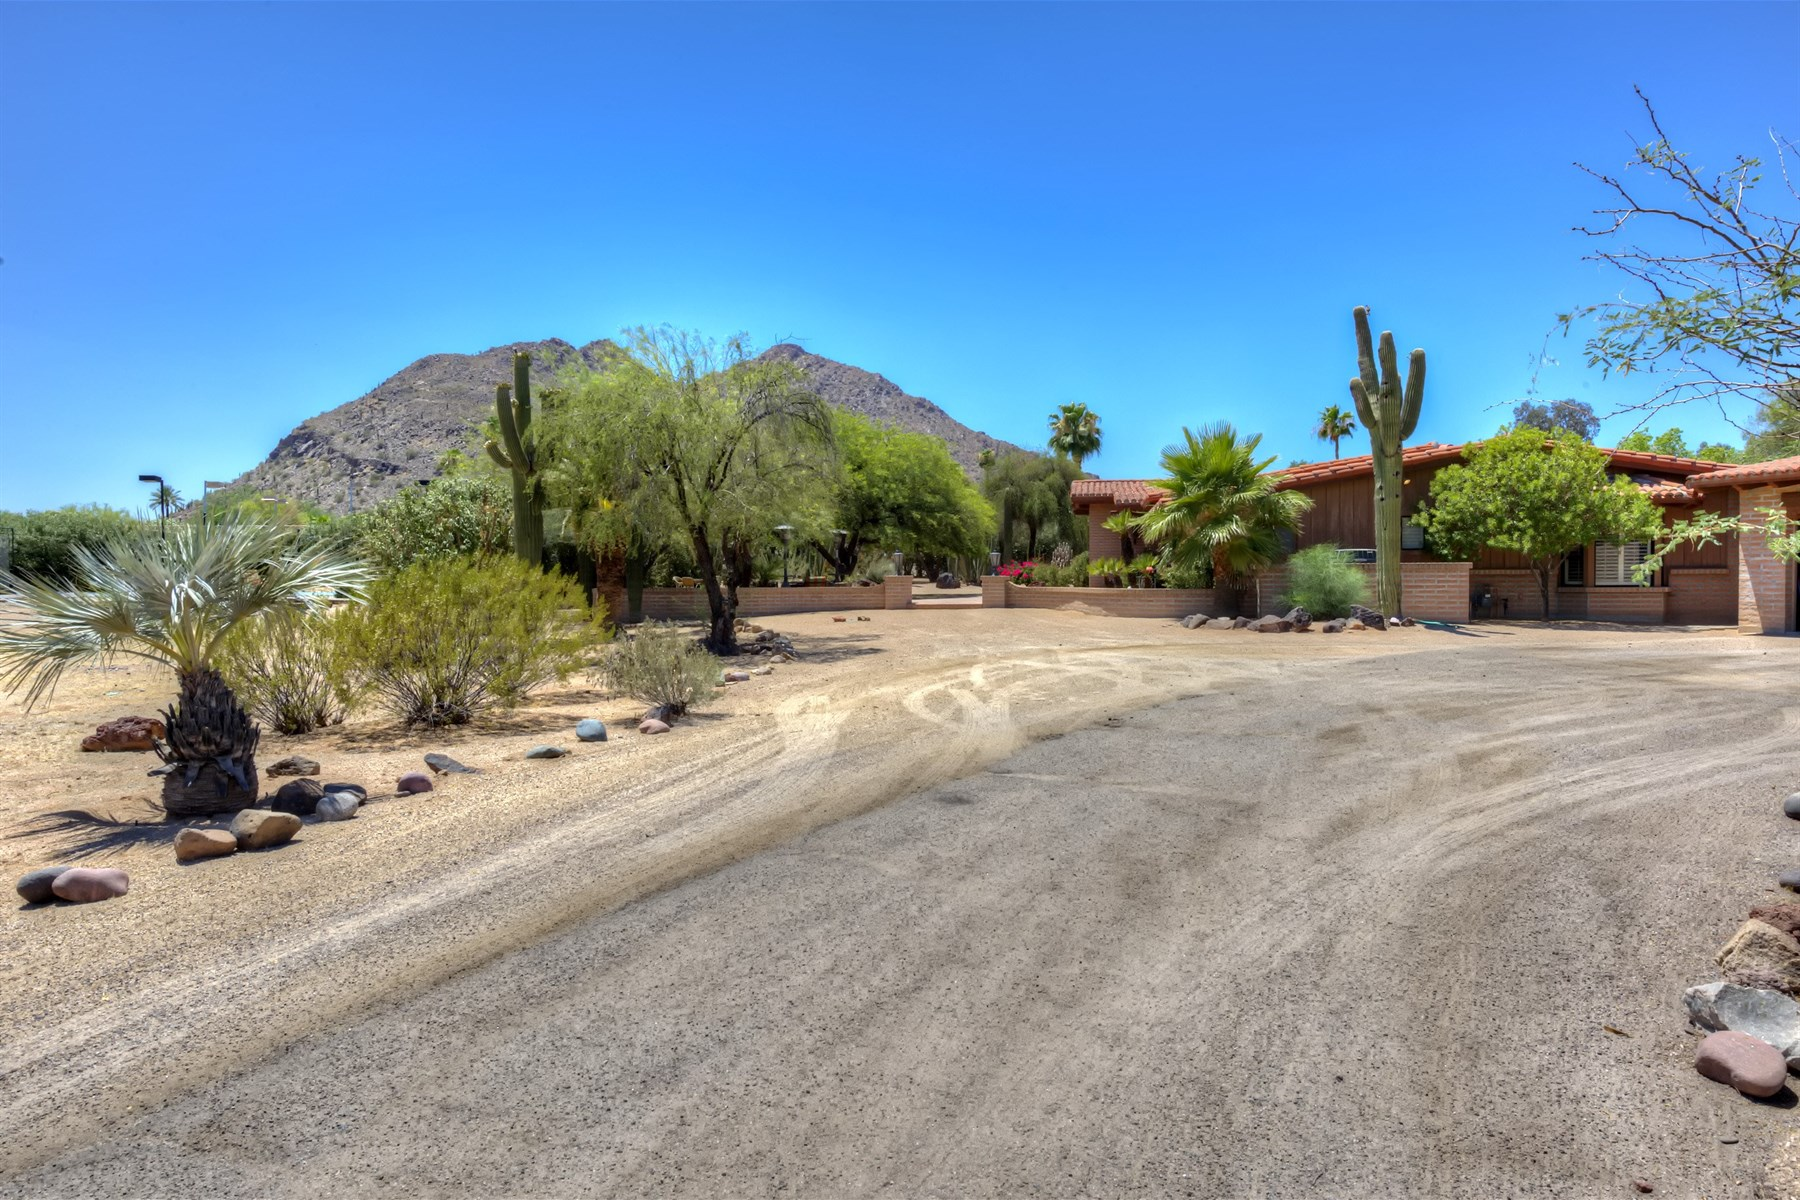 Einfamilienhaus für Verkauf beim Fabulous Location On 2+ Acres On One Of The Best Streets In Paradise Valley 5112 N Casa Blanca Drive Paradise Valley, Arizona 85253 Vereinigte Staaten